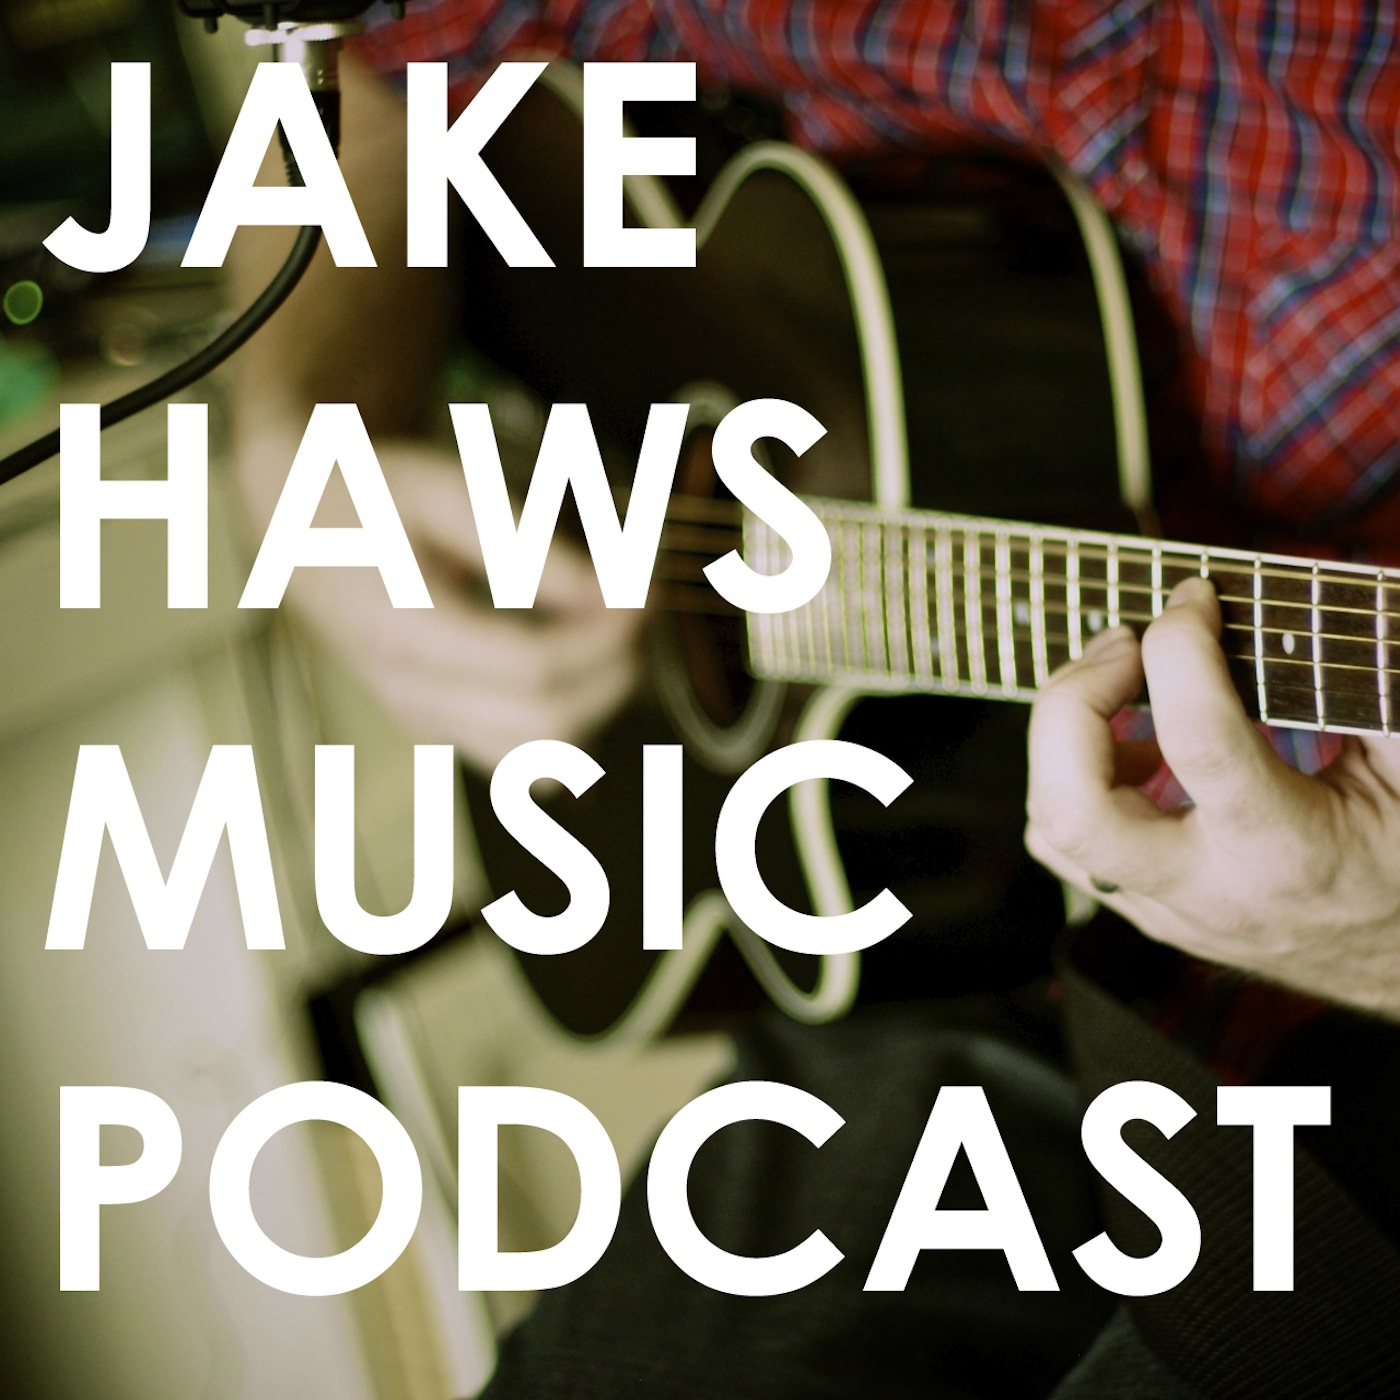 Jake Haws Music Podcast